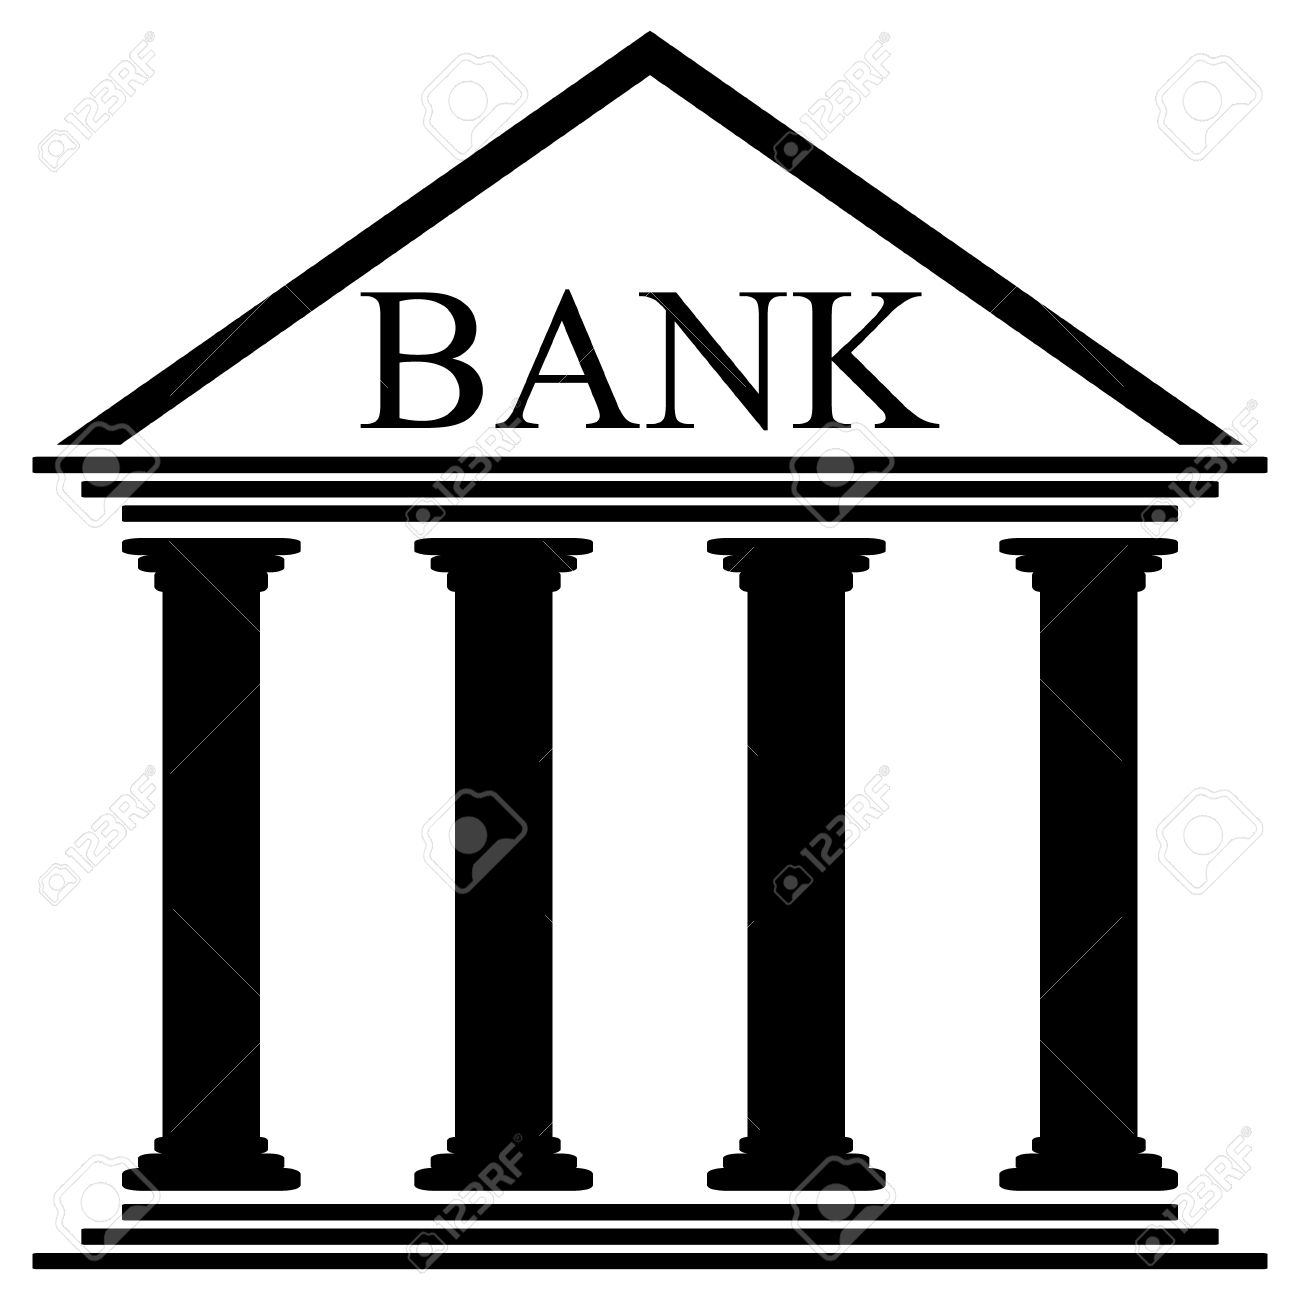 bank icon on white background vector illustration royalty free rh 123rf com banking clip art images banking clip art images